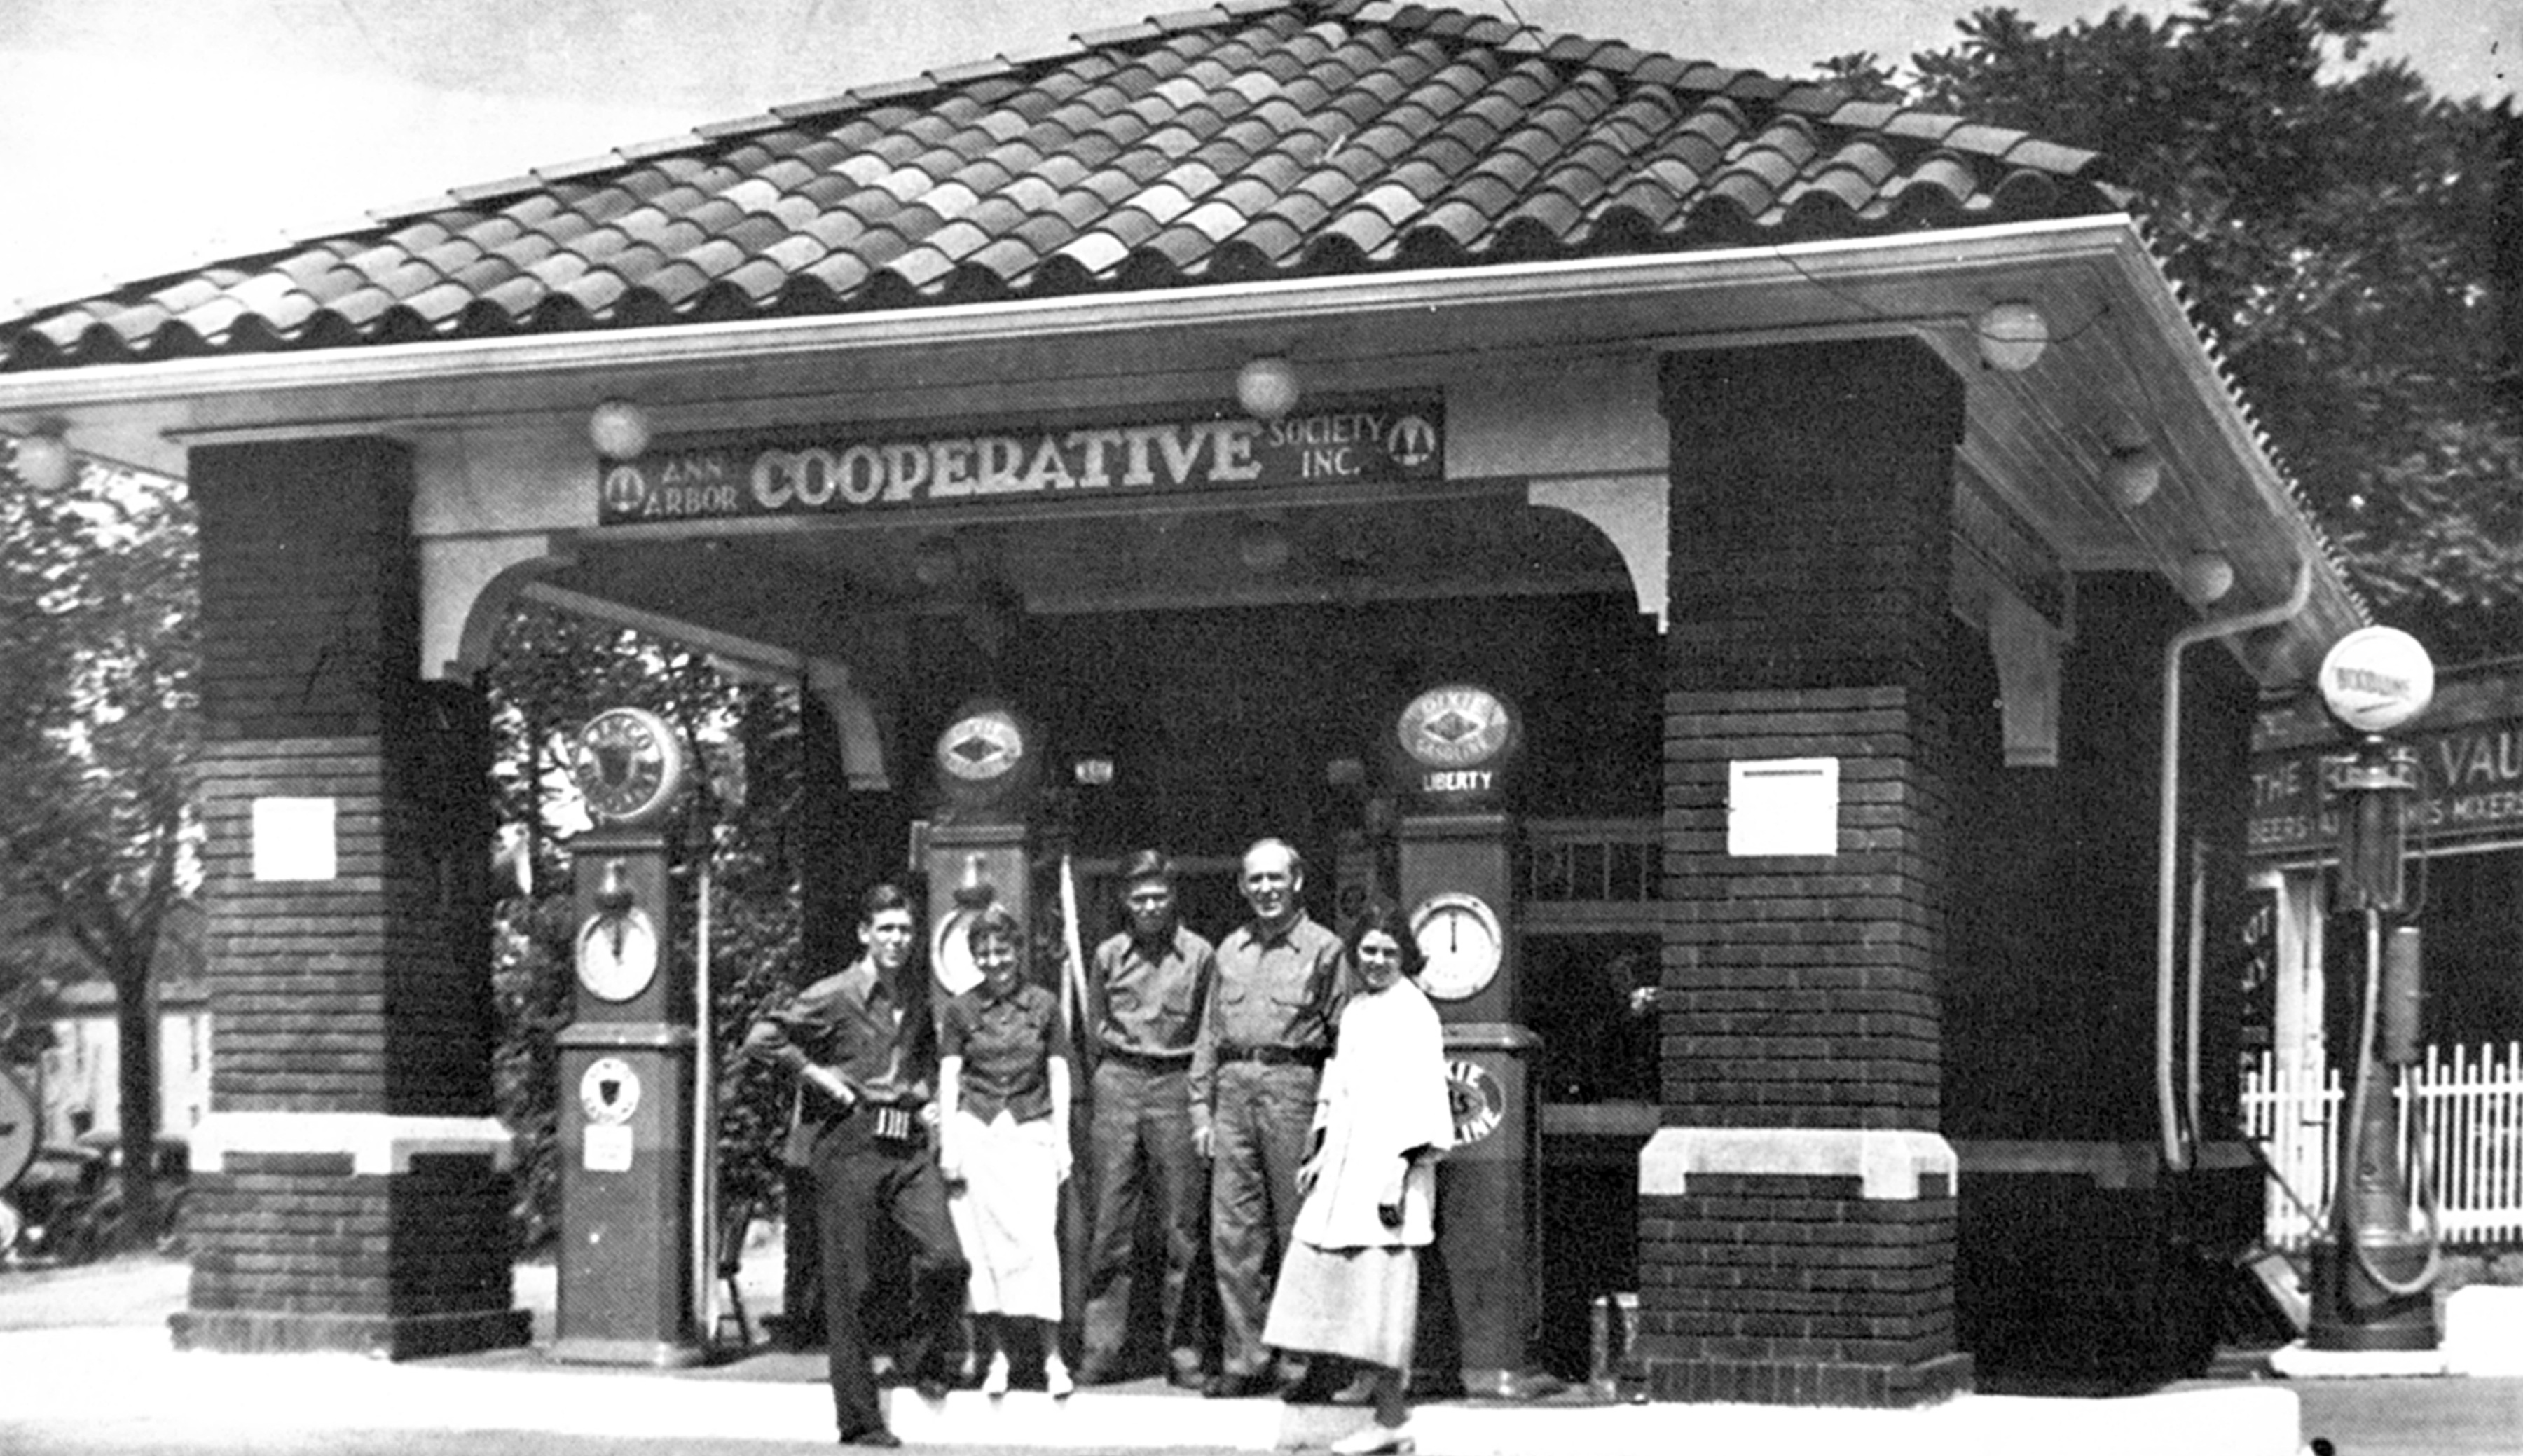 Employees outside the Ann Arbor Co-Operative Society Gas Station image